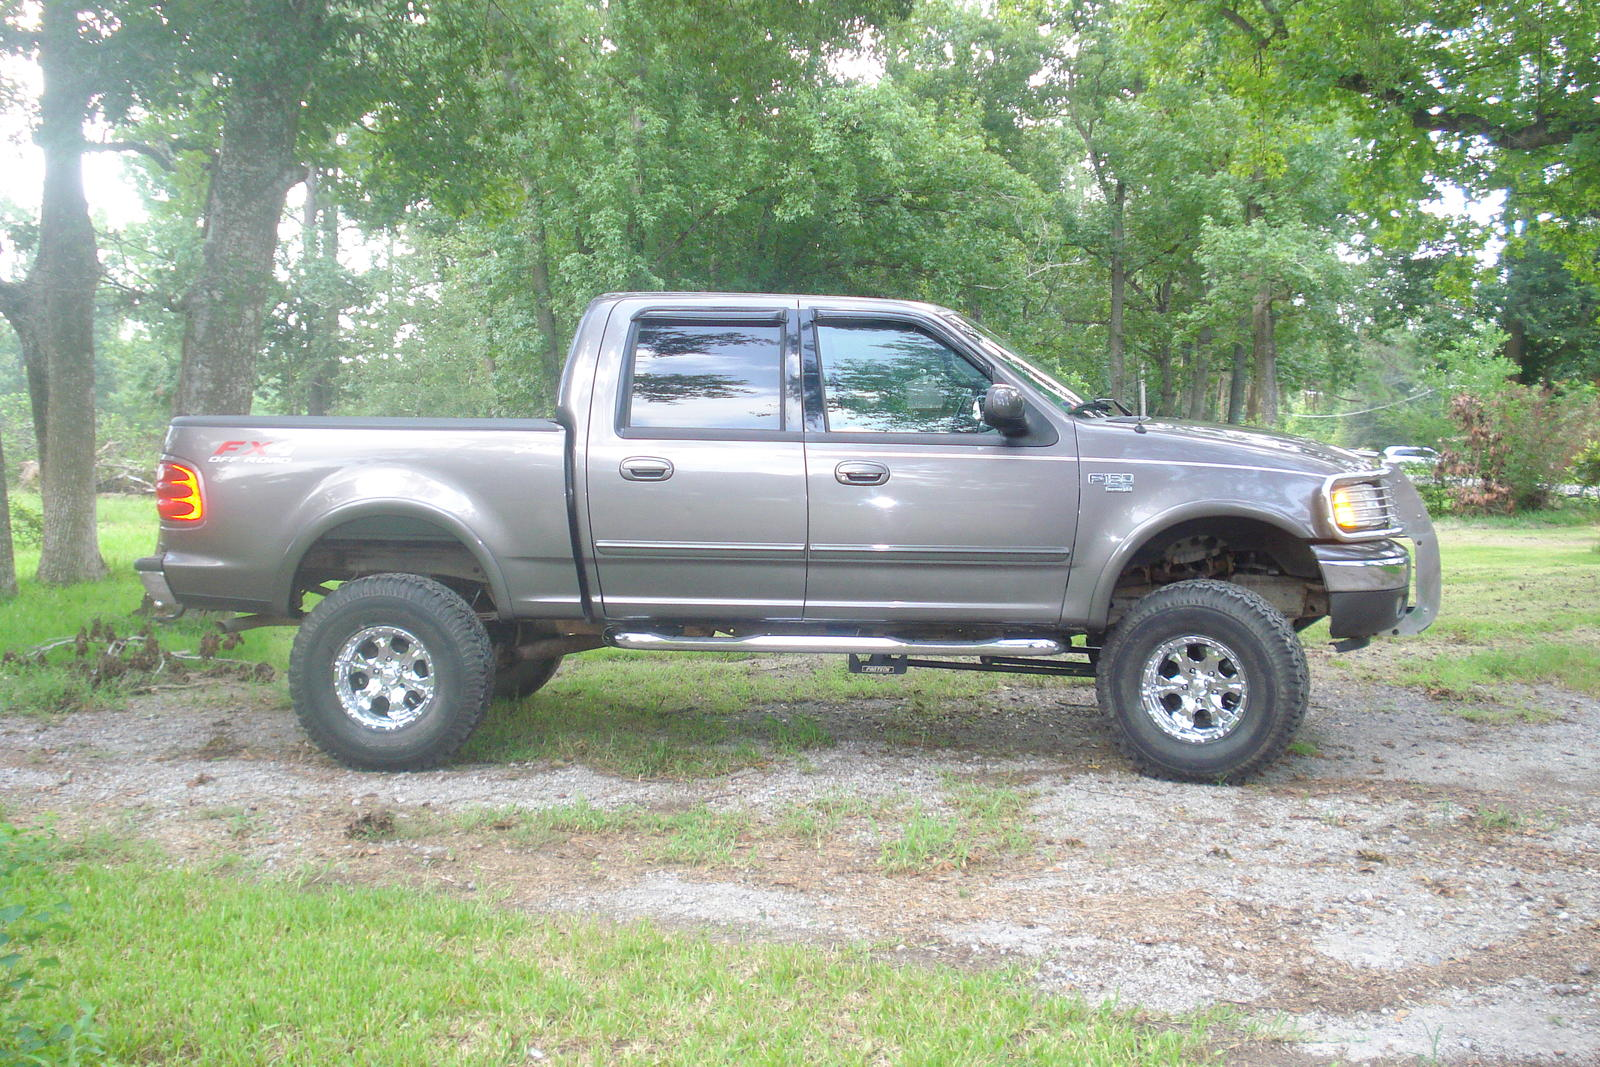 2002 Ford F-150 Lifted